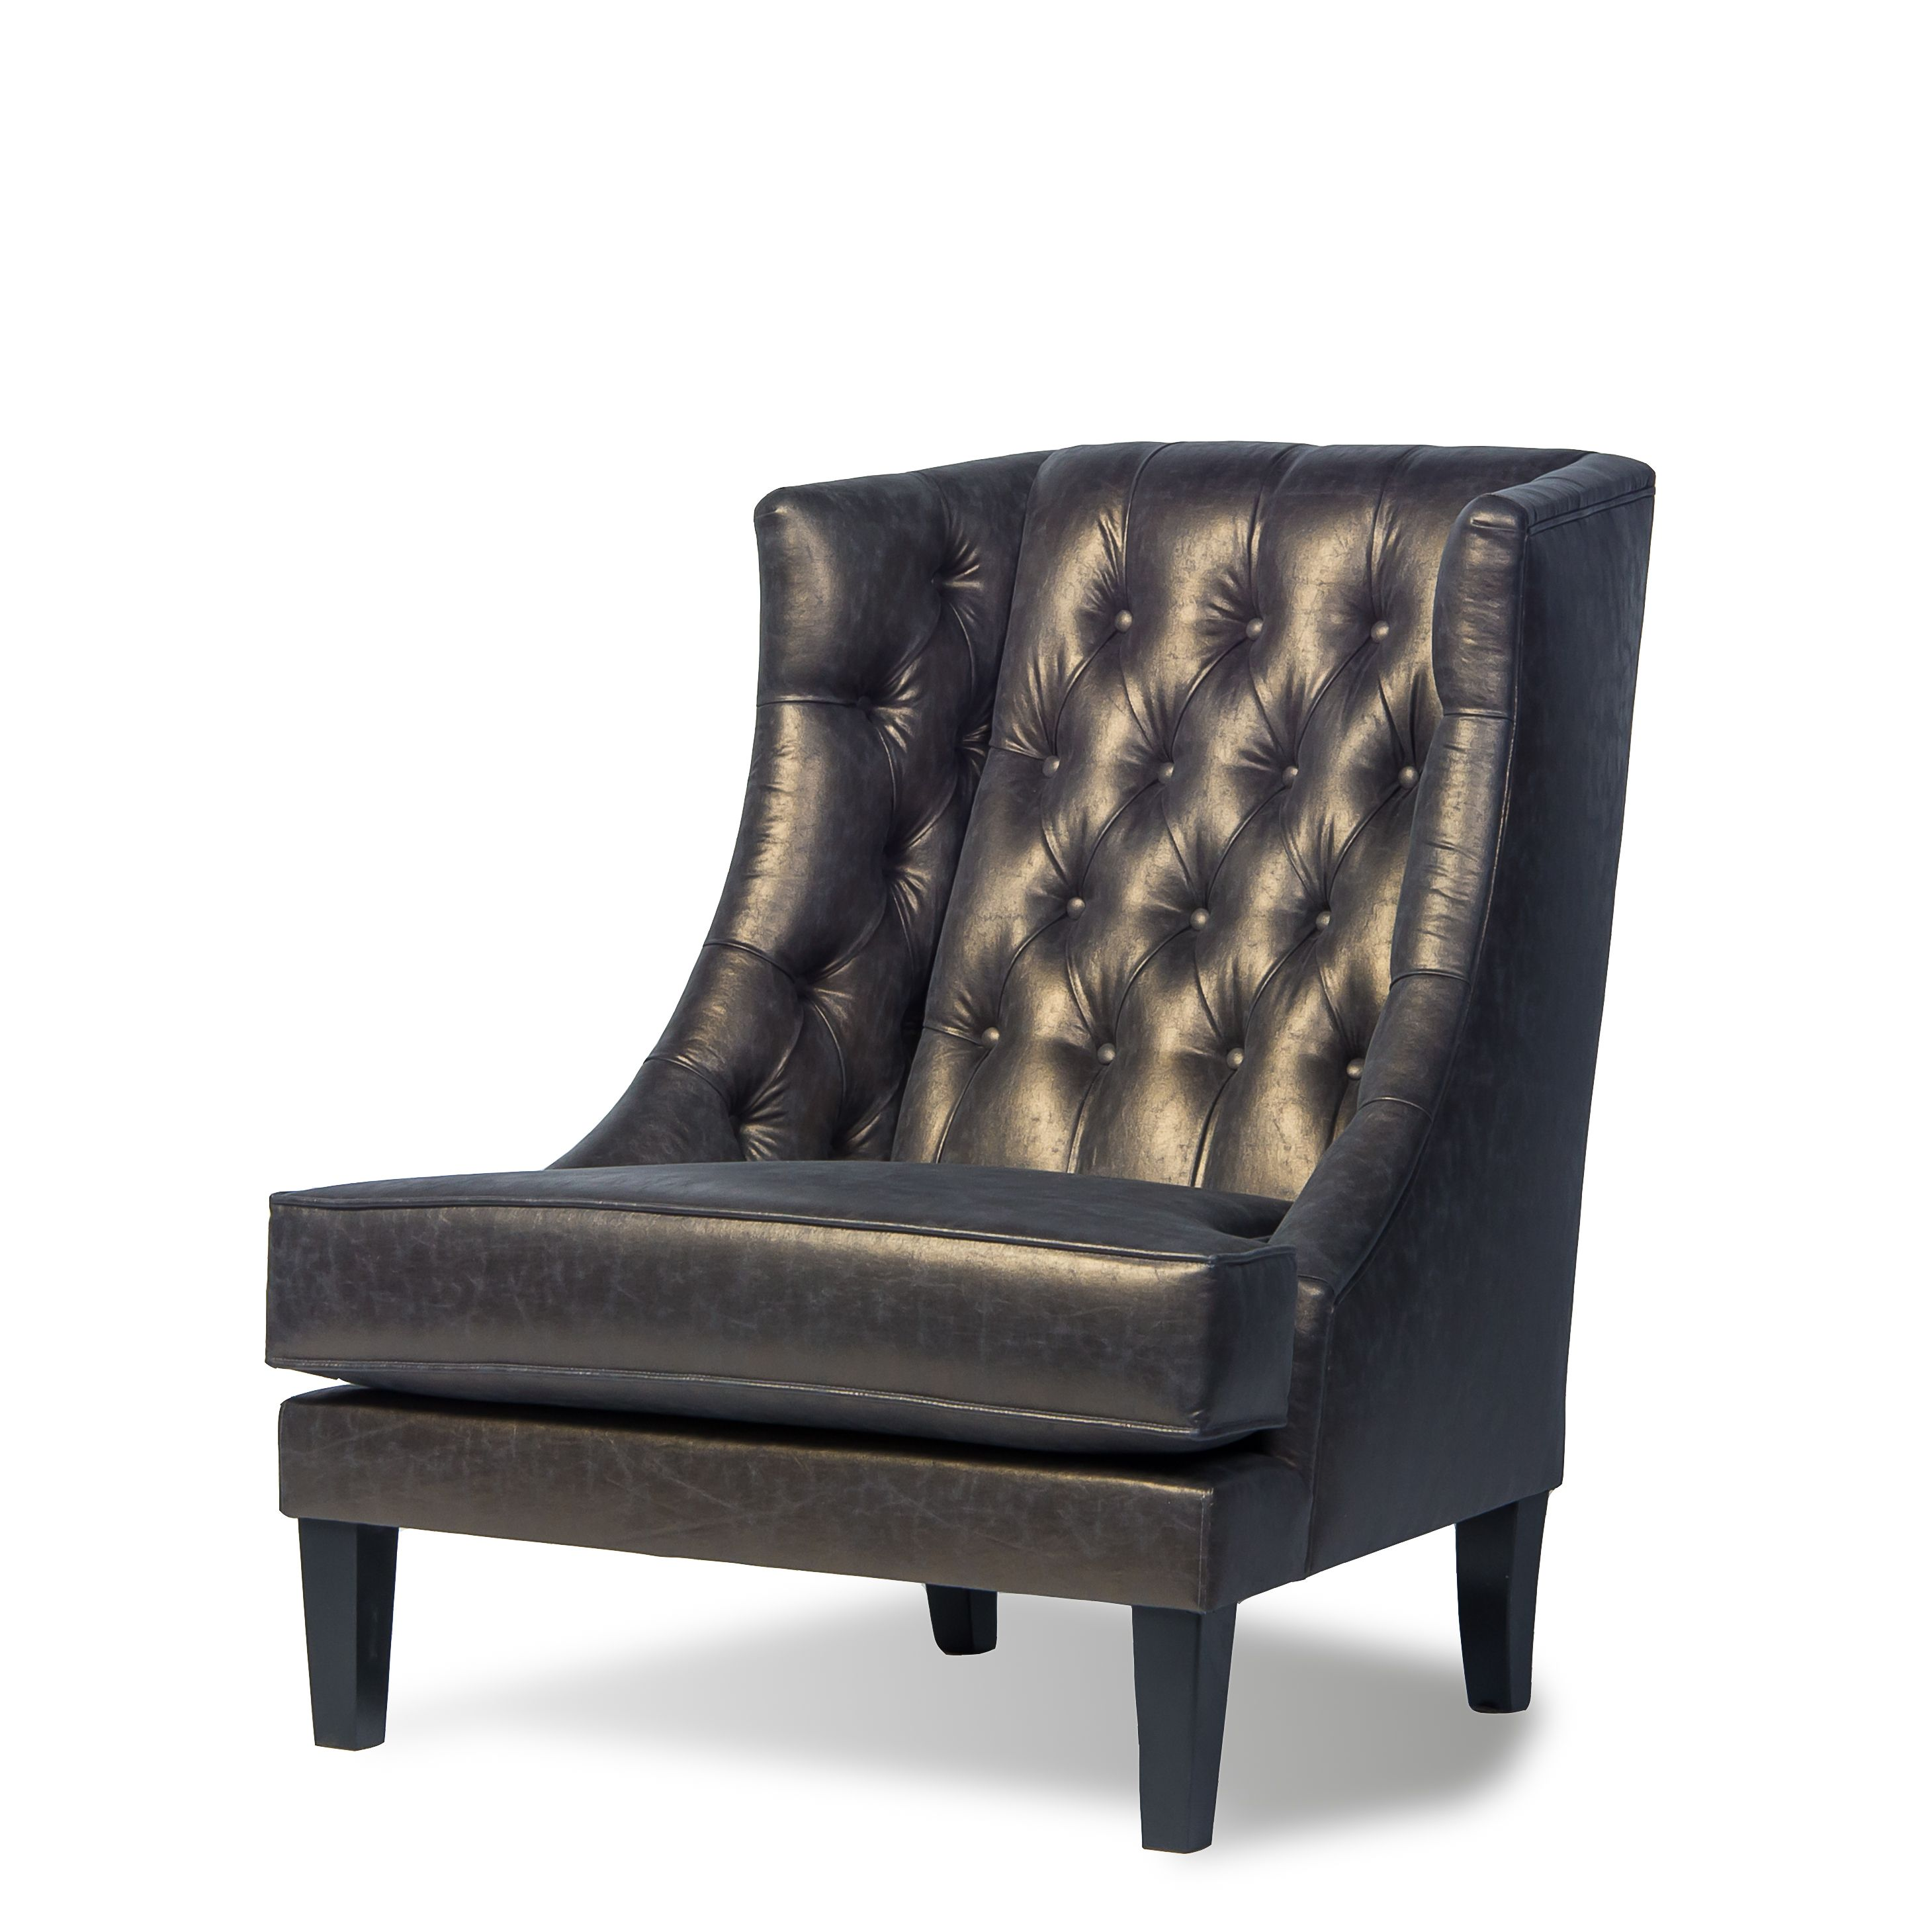 Madison Fauteuil I Metropole Collectie By Baan Fauteuil